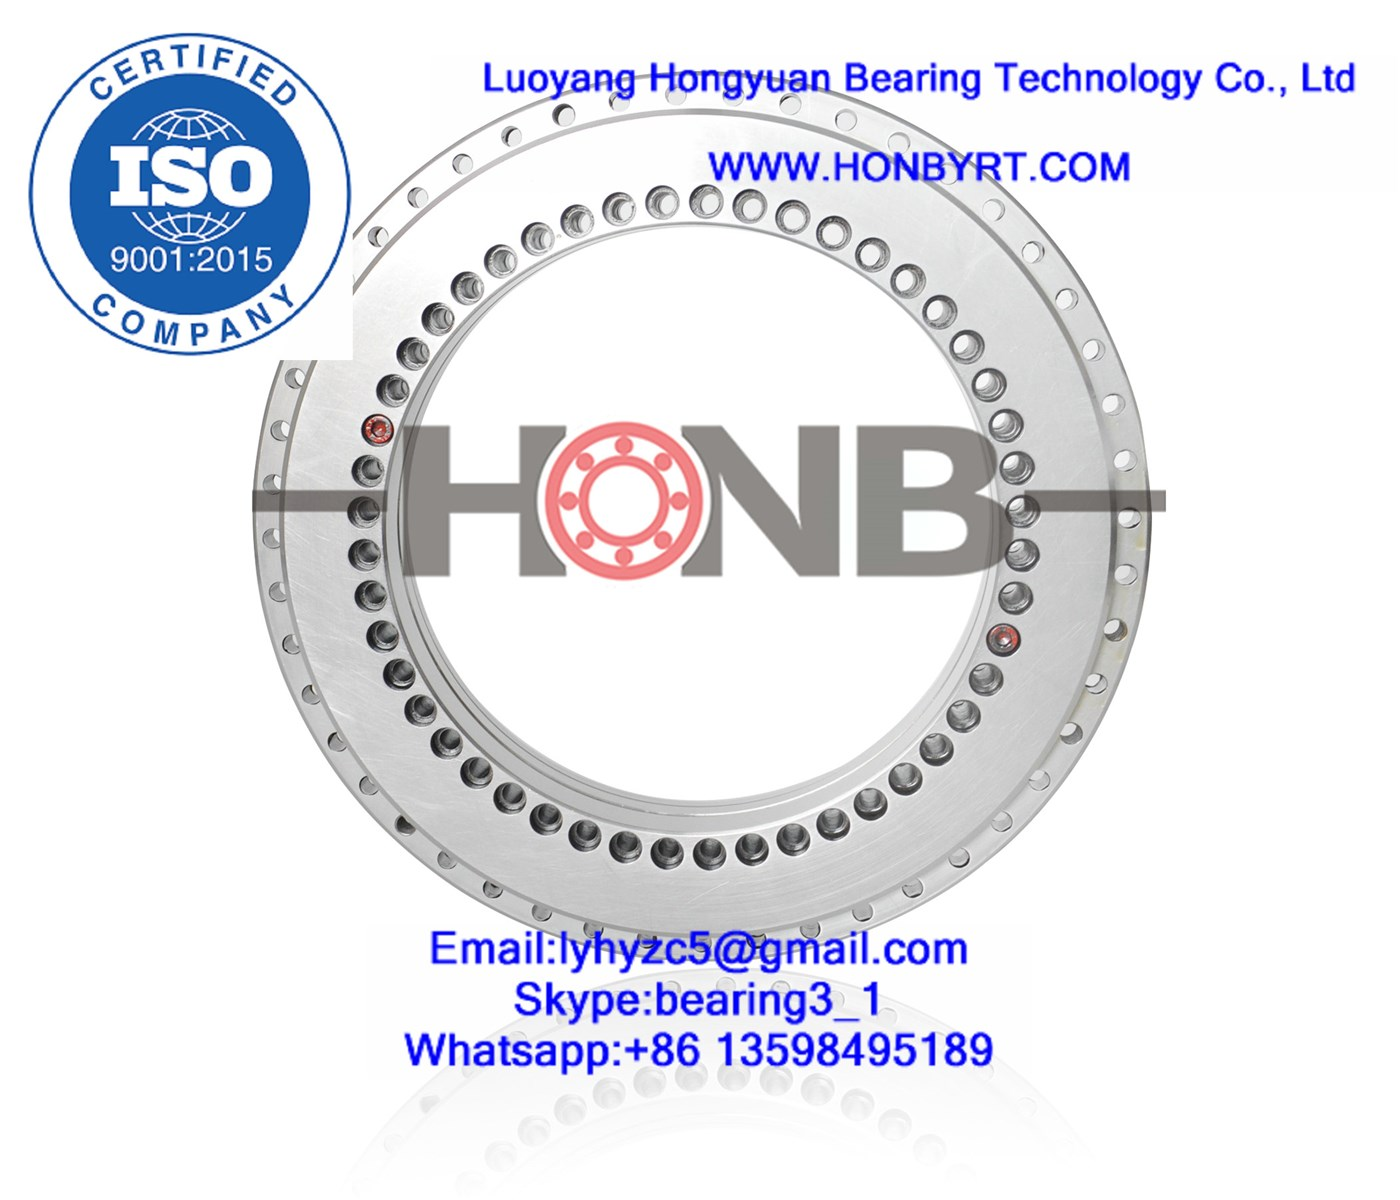 YRT580 Axial and Radial combined bearingsYRT580 can replace INA bearings